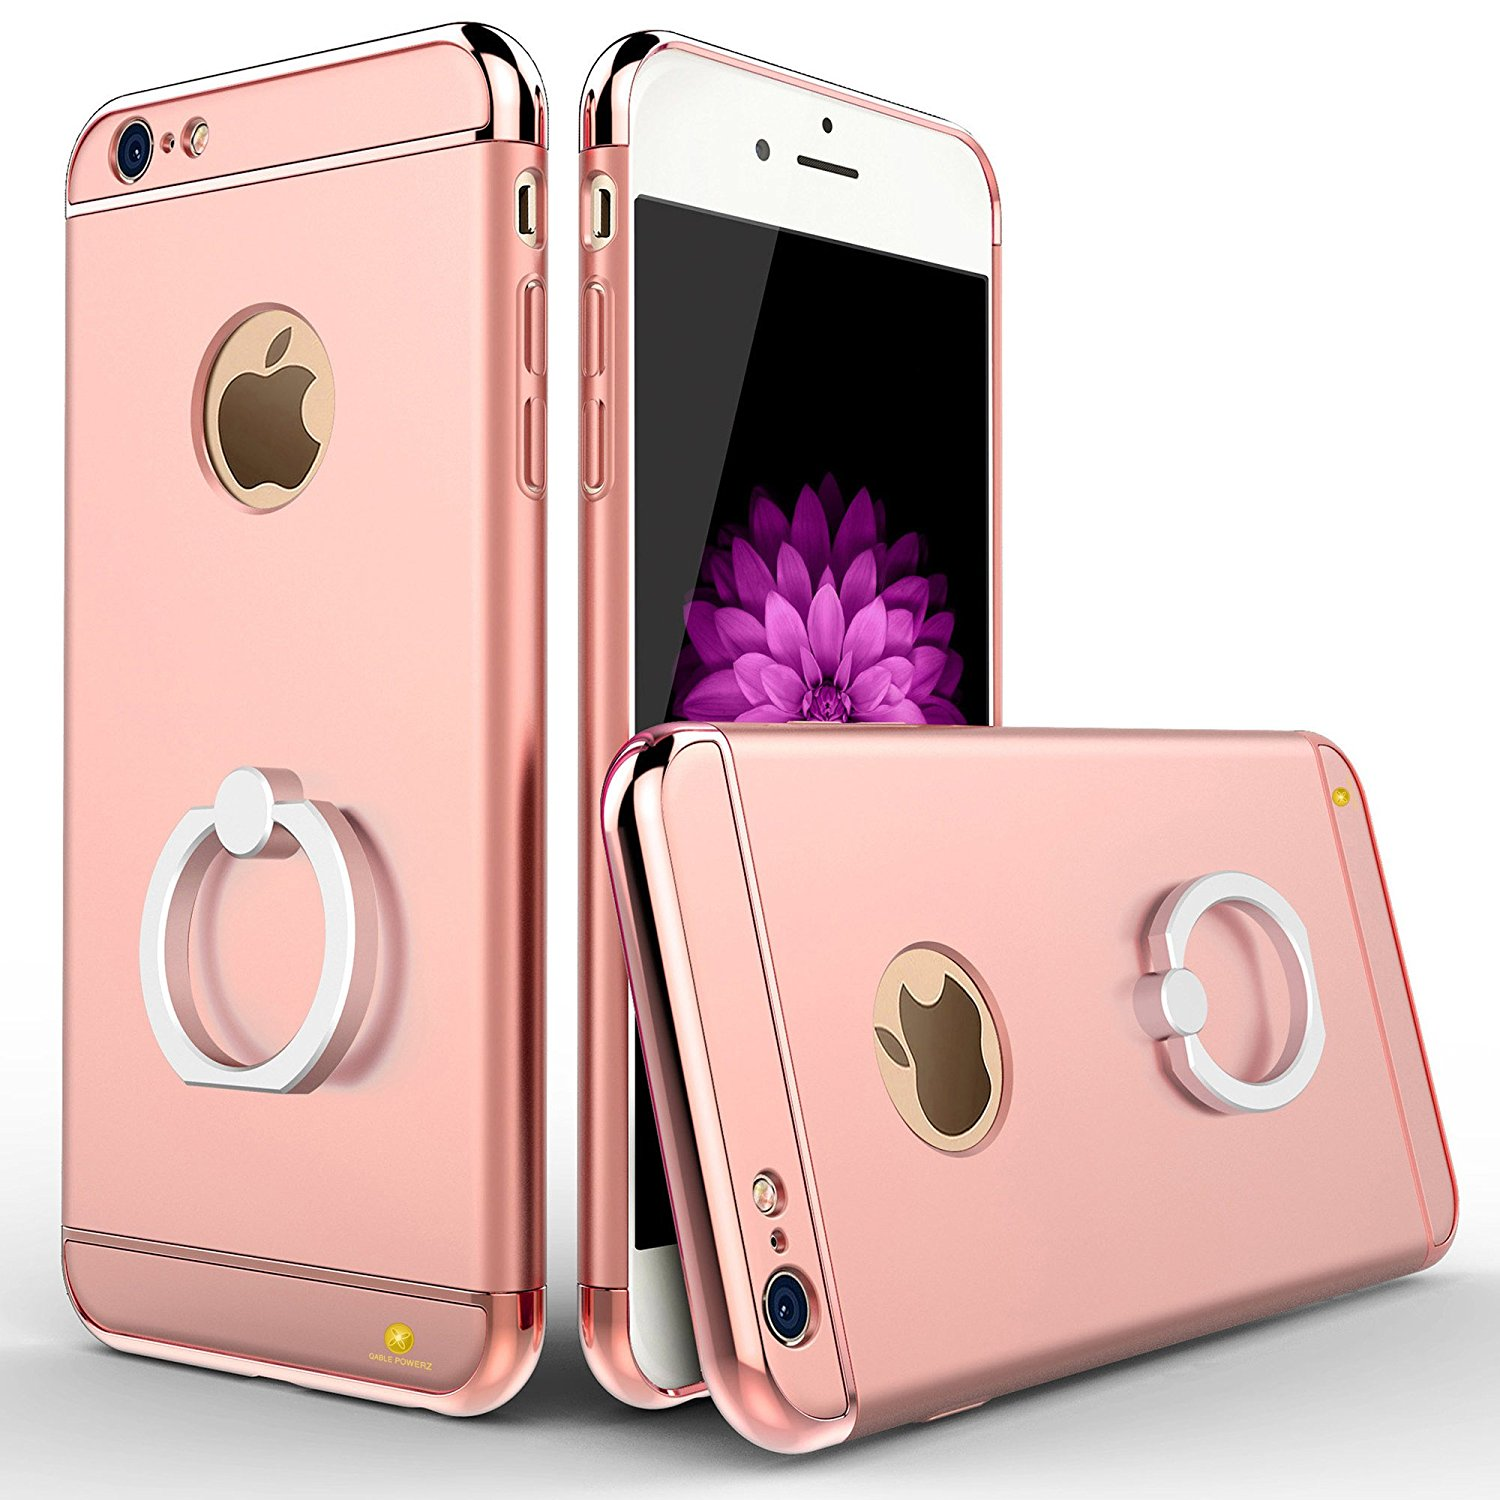 Cheap 360 Iphone Case Find Deals On Line At Alibabacom Goospery 6 6s Pearl Jelly Pink Get Quotations With Ring Grip Slim Cellphone Anti Drop Protective Cover W